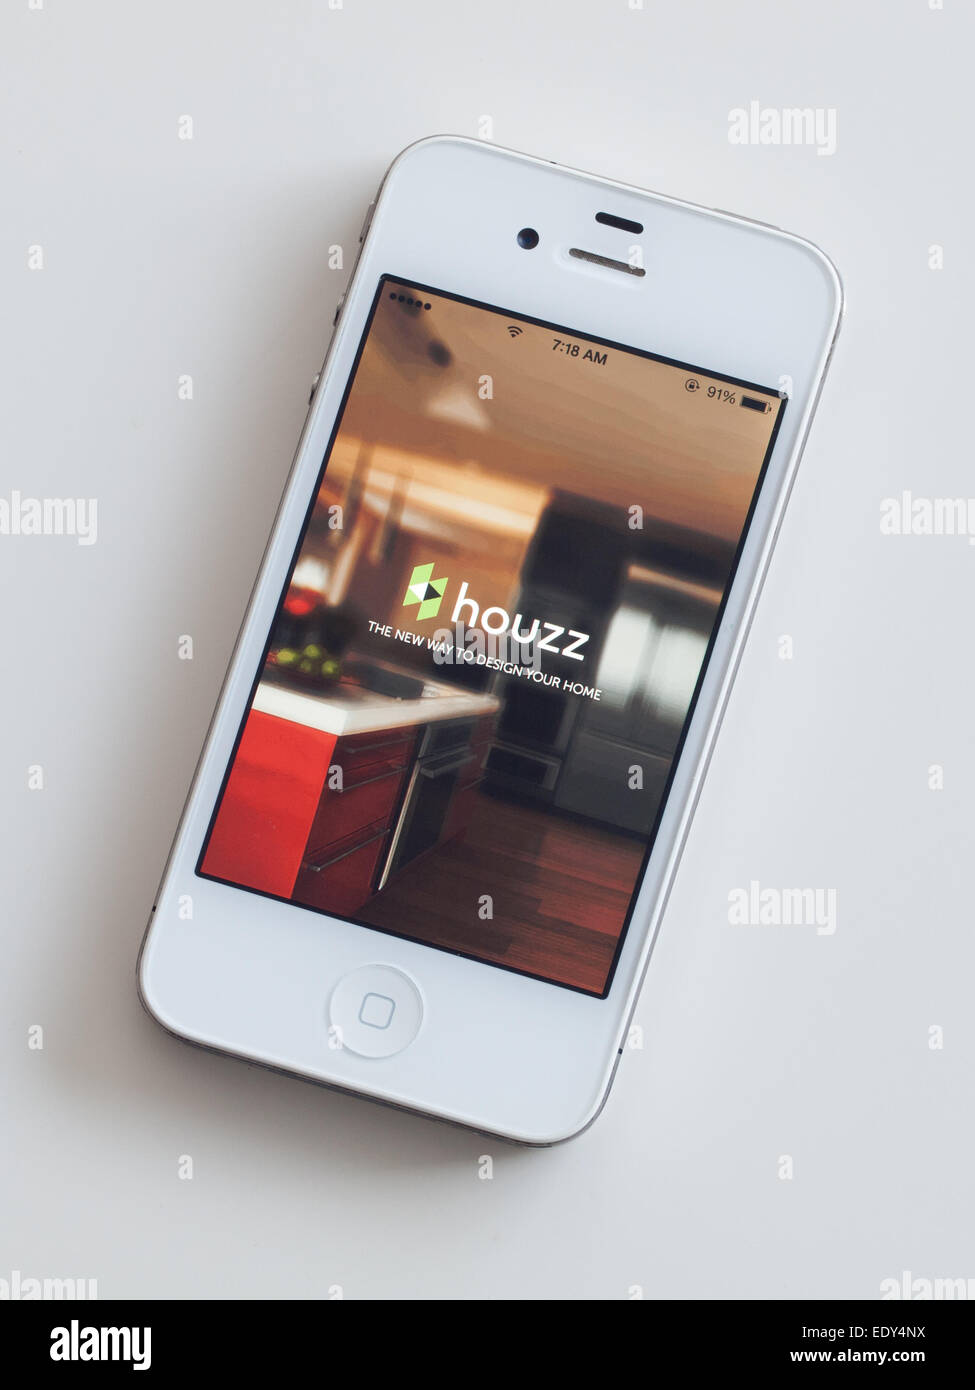 The Homescreen And Logo Of The Houzz Mobile App On A White Apple IPhone 4.